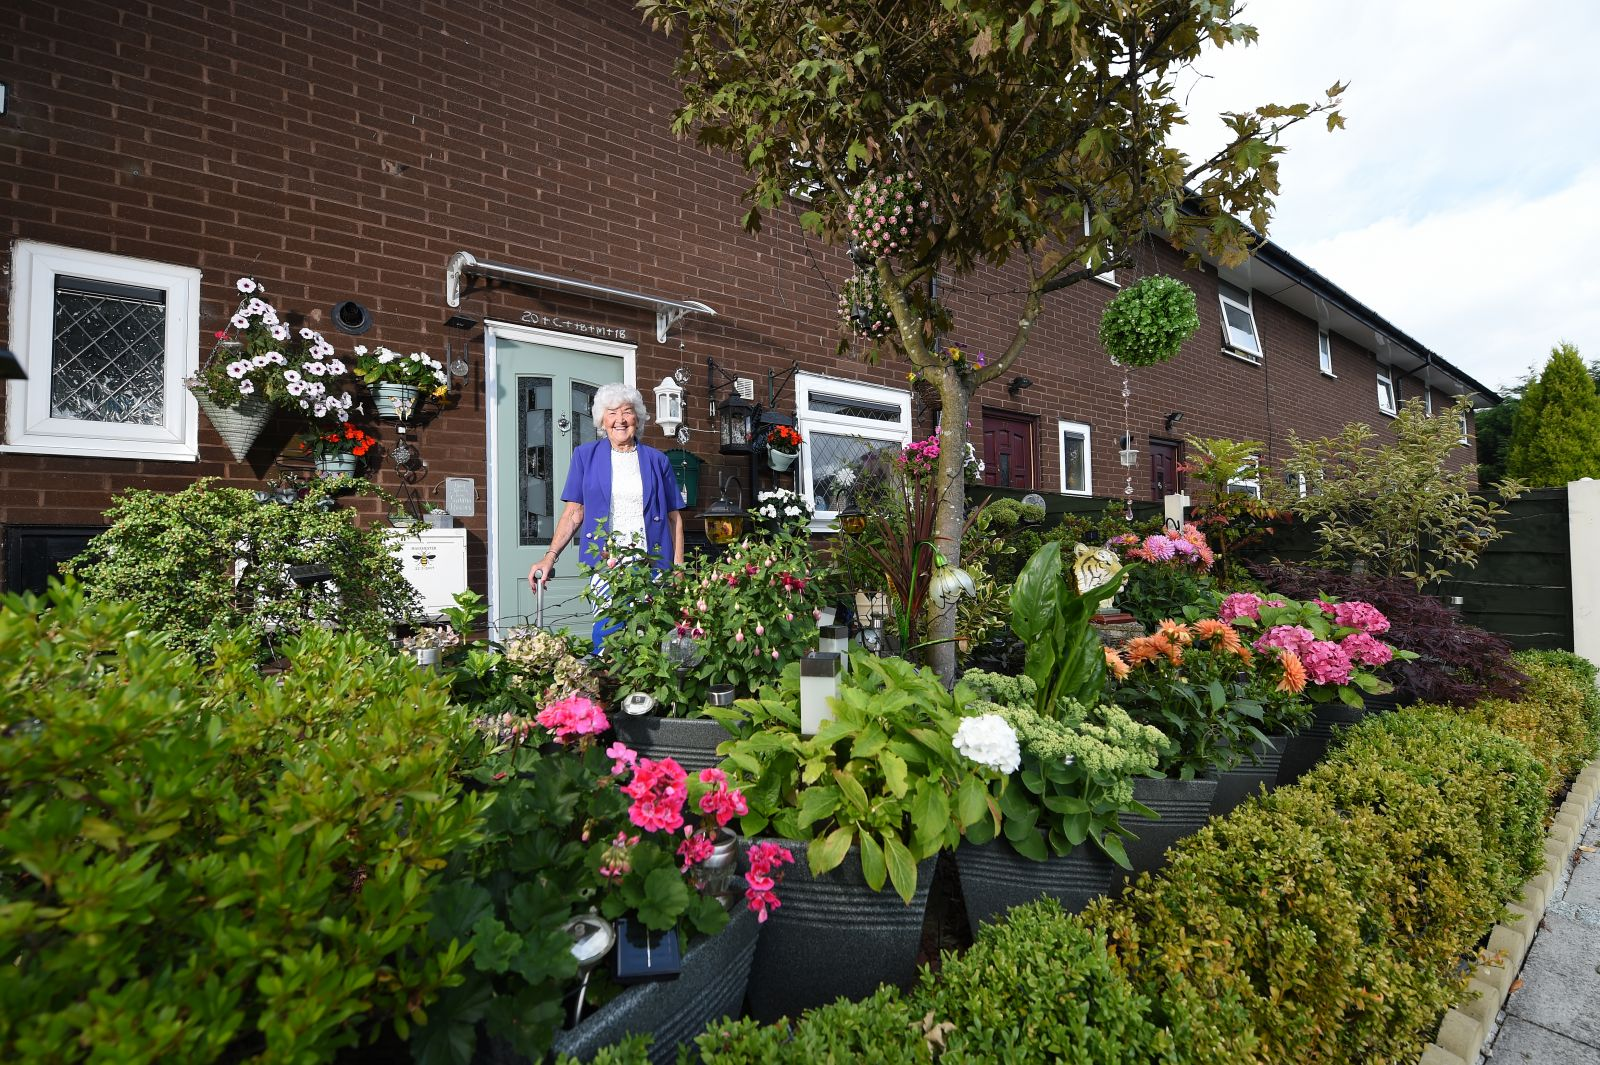 Jean in Radcliffe came first in the Best Pots, Baskets and Small Spaces category in Six Town Housing's Flower Power competition